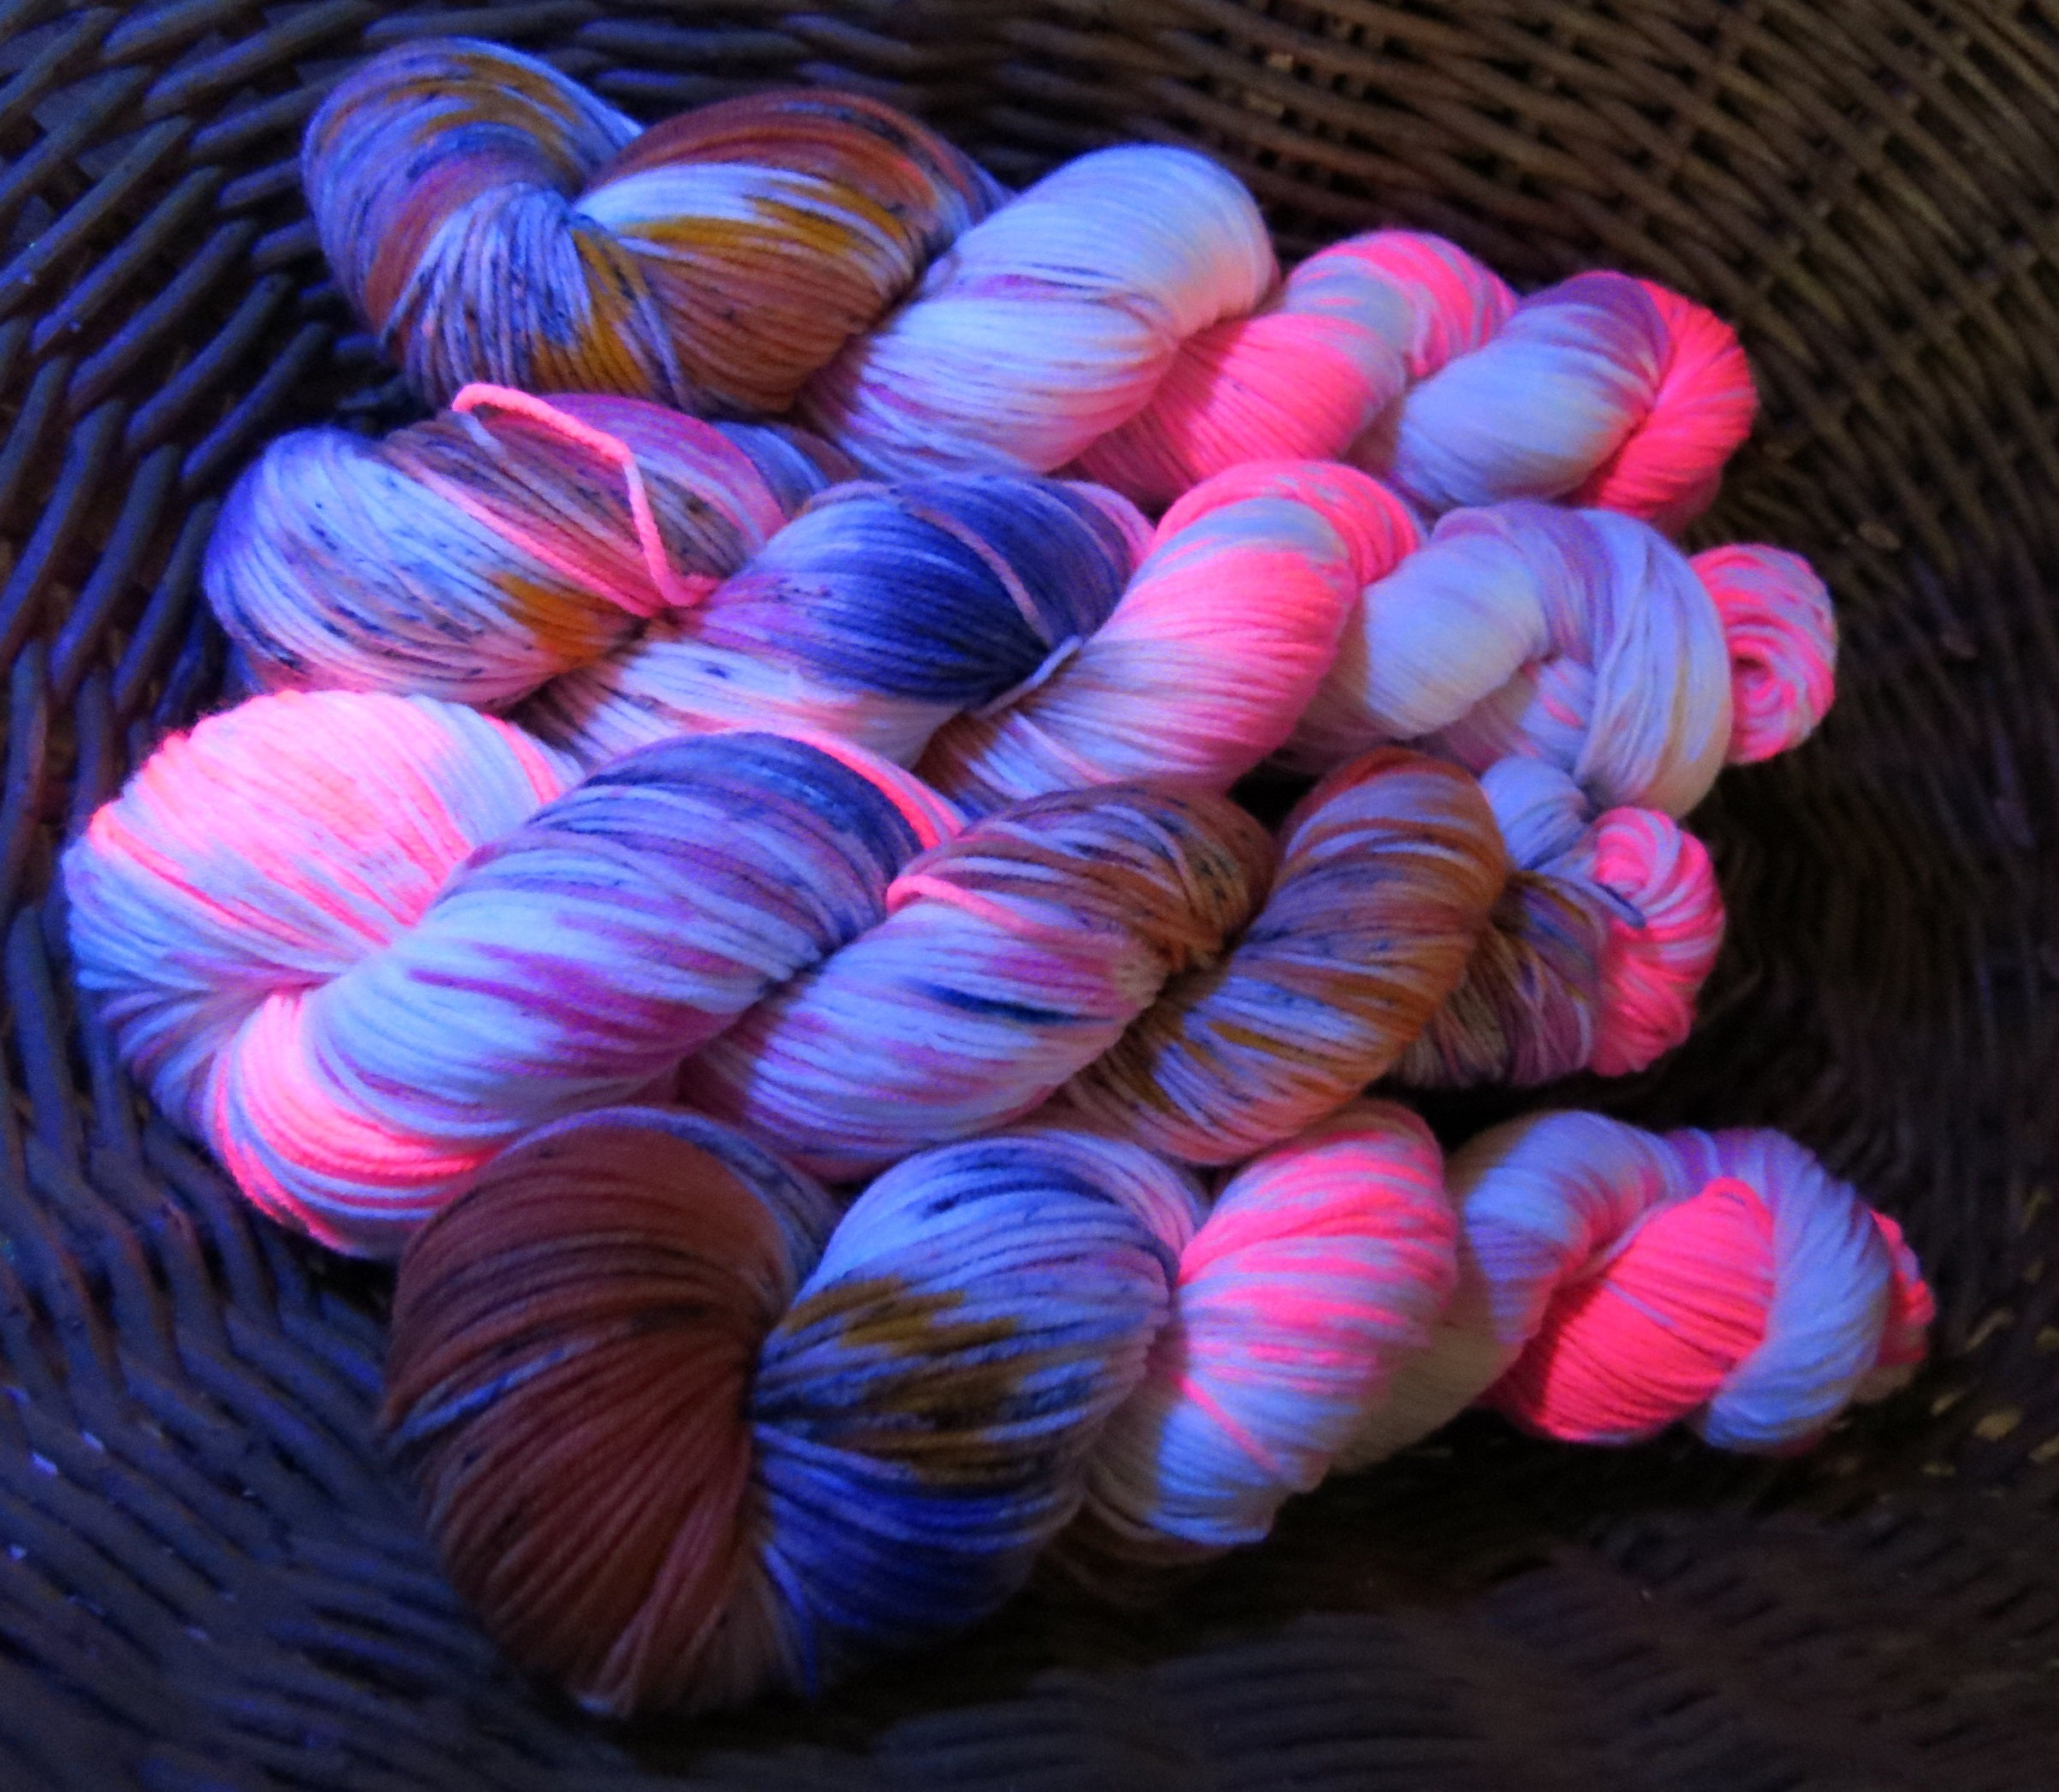 uv reactive pink and orange DK yarn skein under black light